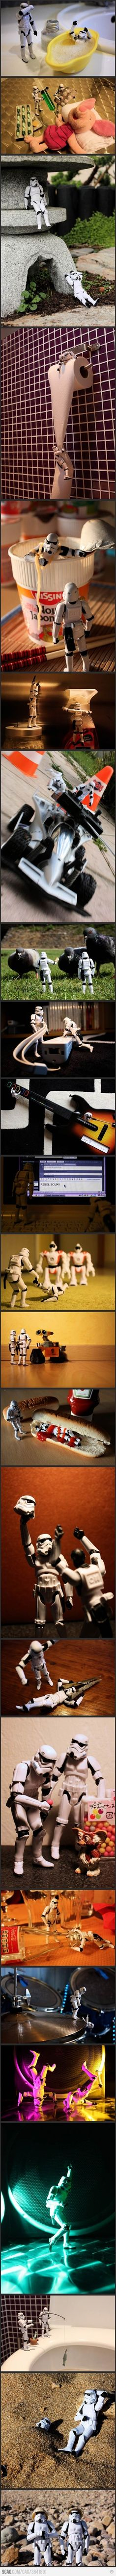 The adventures of two Storm Trooper buddies.